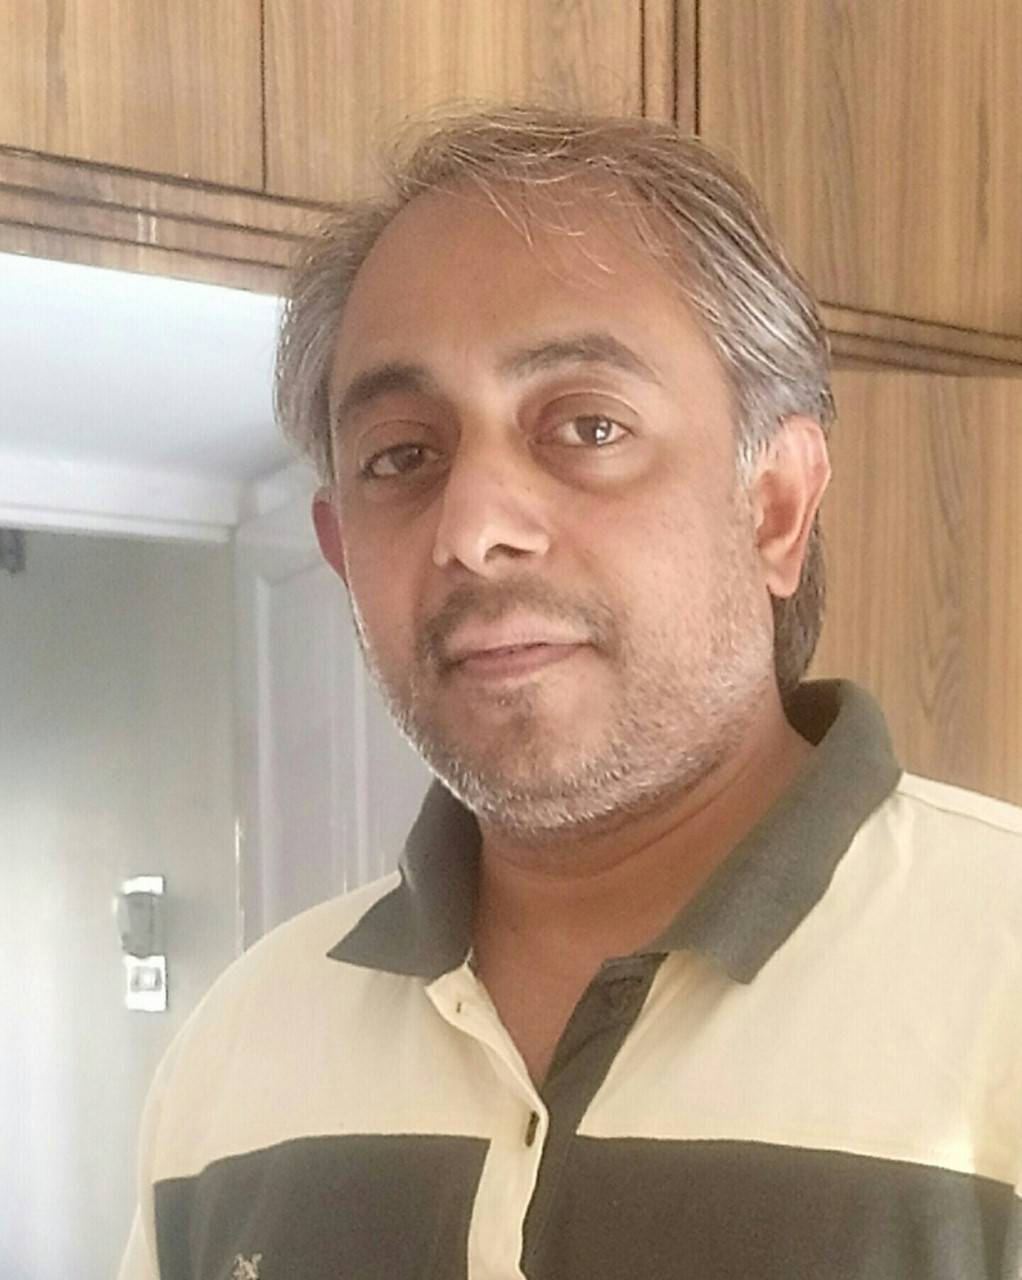 Meet this IIT Mandi professor who has won Infosys Prize 2019 for his research on history of Deccan and South India